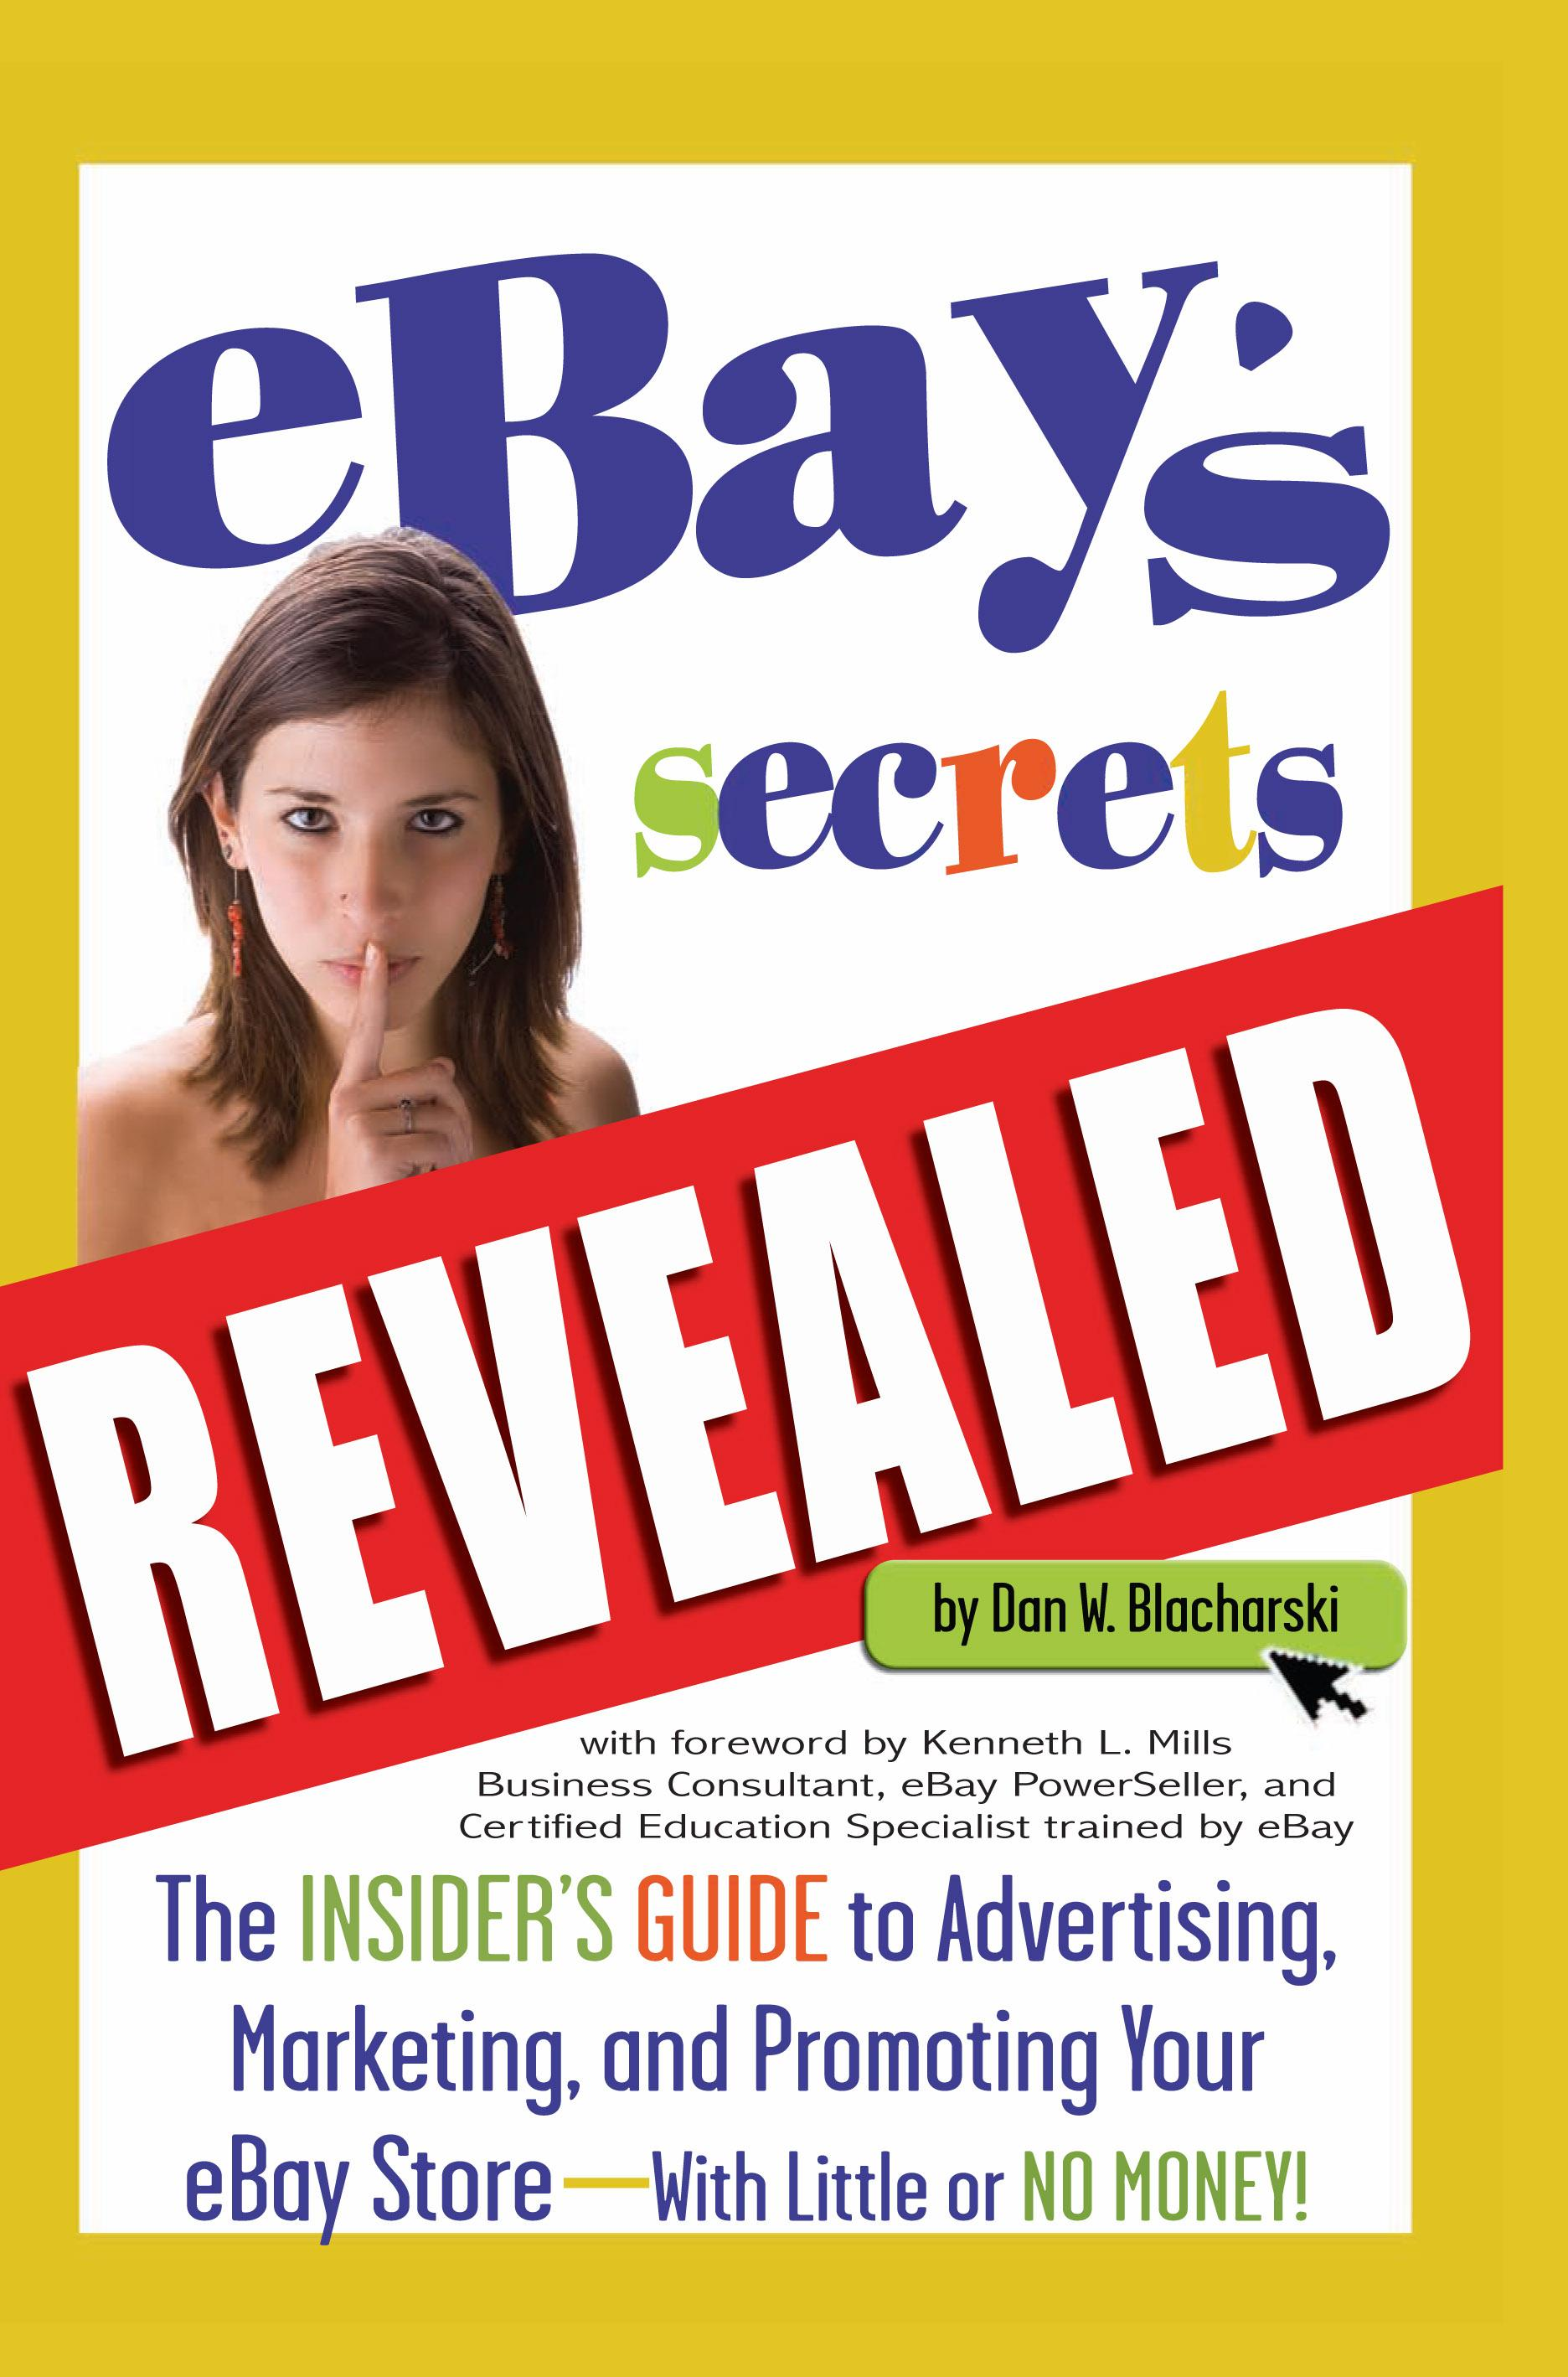 eBay's Secrets Revealed: The Insider's Guide to Advertising, Marketing, and Promoting Your eBay Store With Little or No Money EB9787772504097